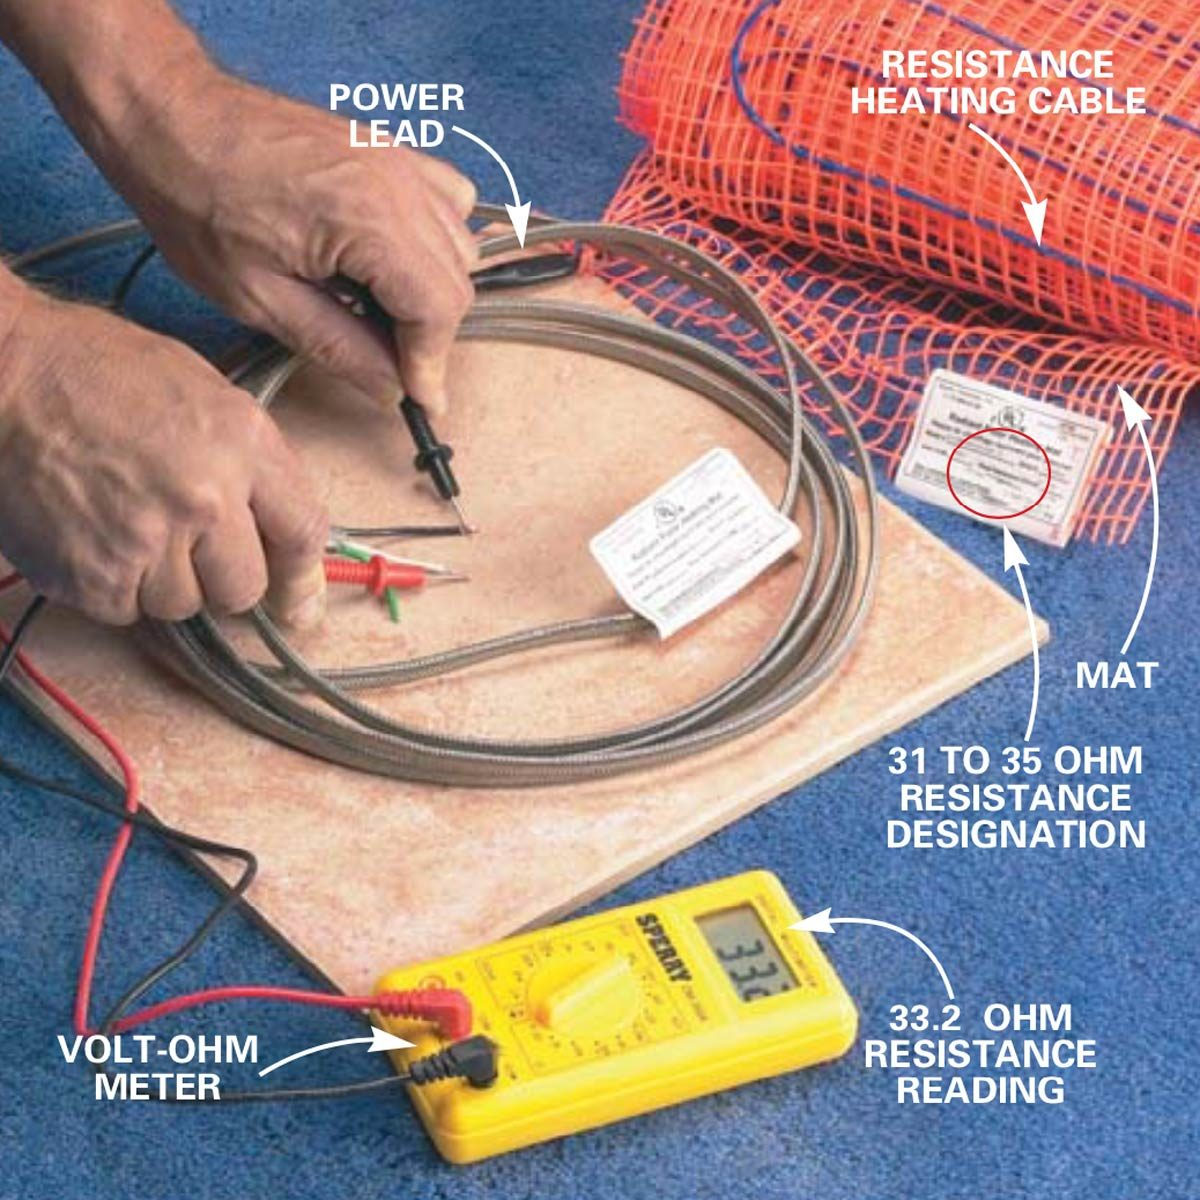 How To Install In Floor Heat Radiant Installation The Family Central Heating Wiring Diagram S Plan Handyman